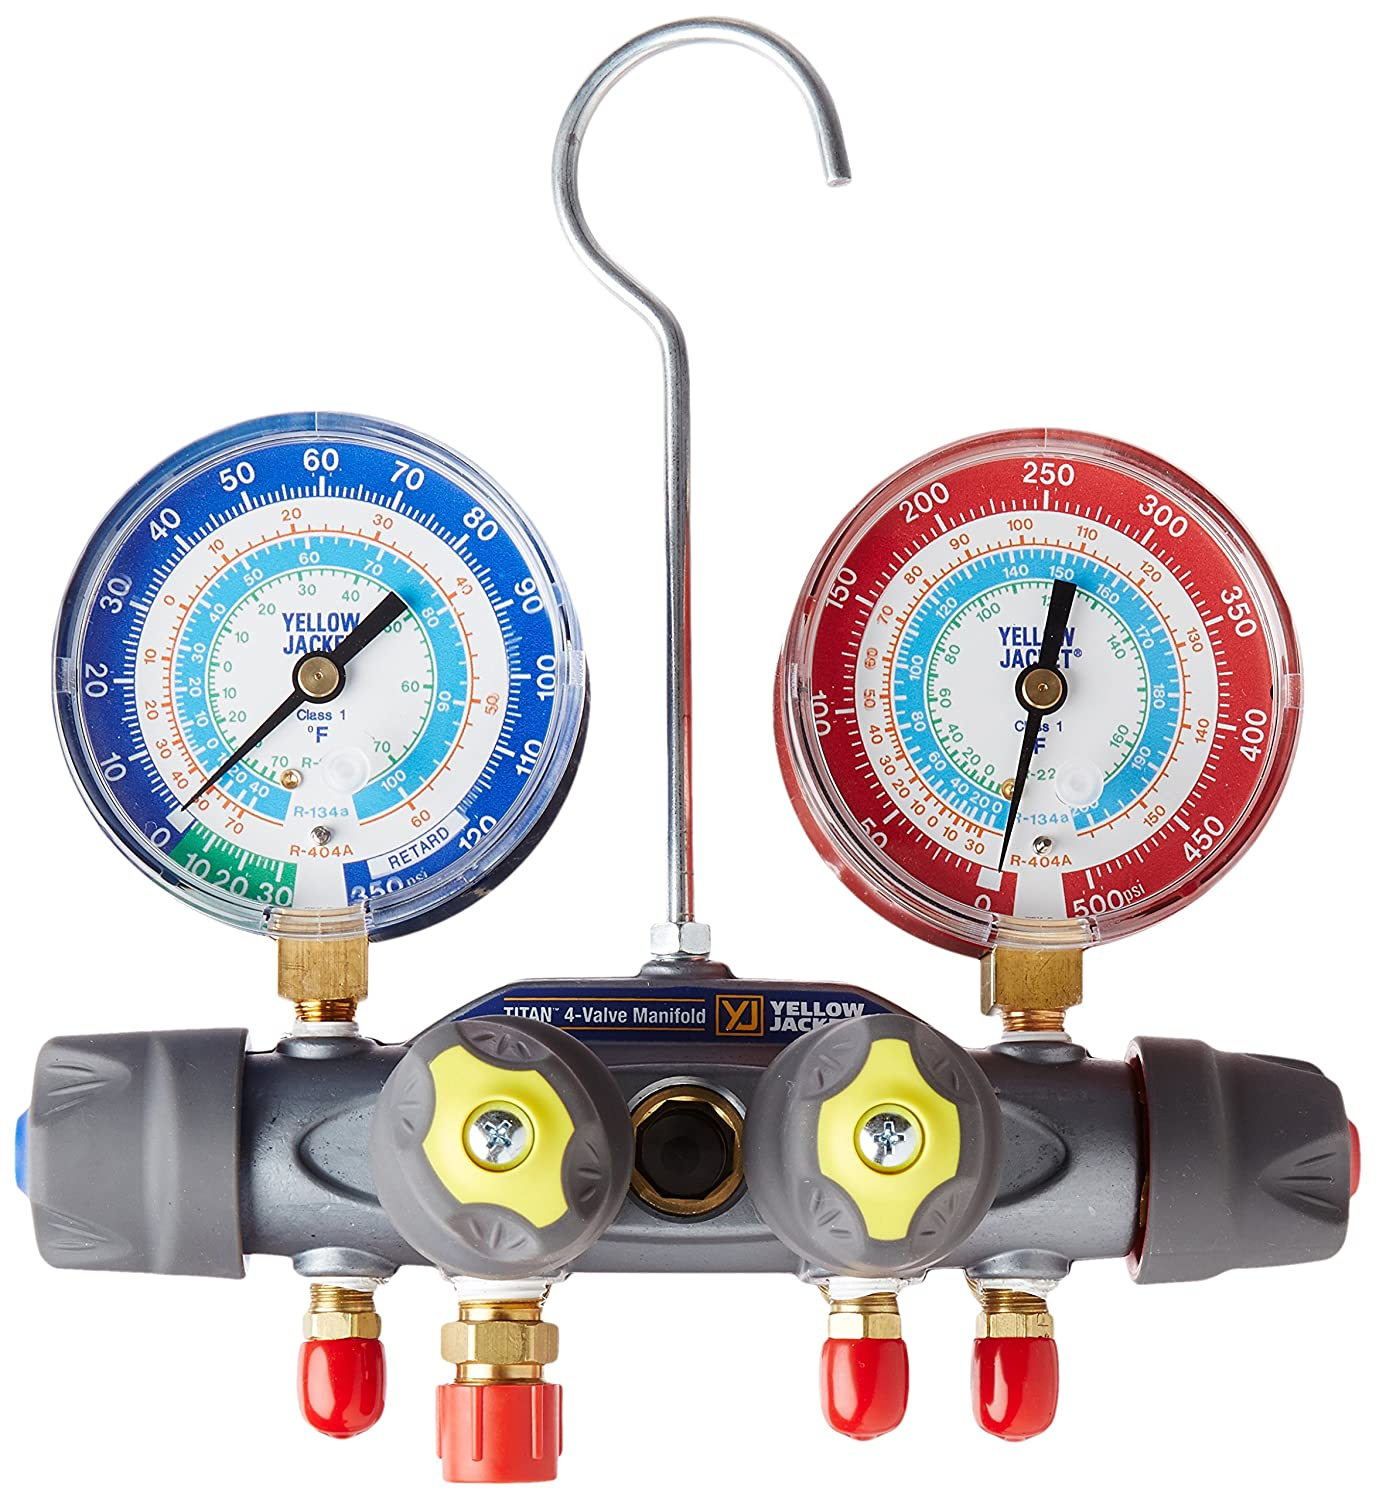 Yellow Jacket 49983 Manifold Only Degrees F, psi Scale, R-22/134A/404A Refrigerant, Red/Blue Gauges